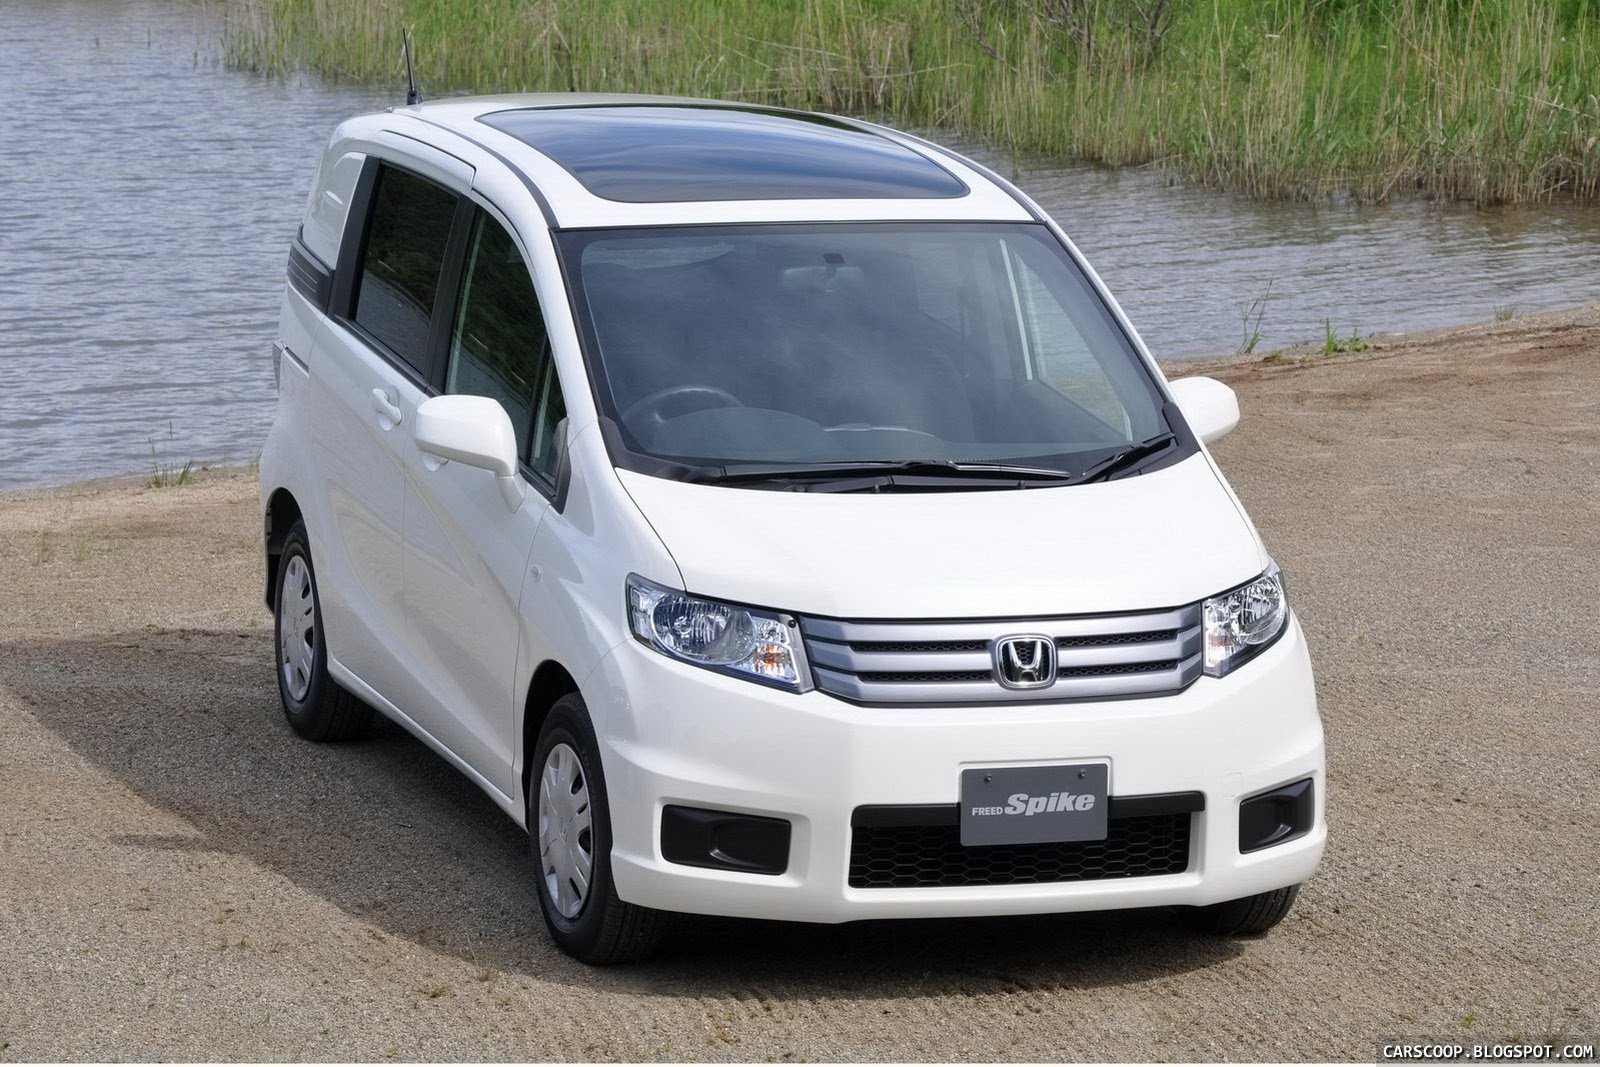 New Honda Freed Spike Quot Lifestyle Quot Minivan Debuts In Japan